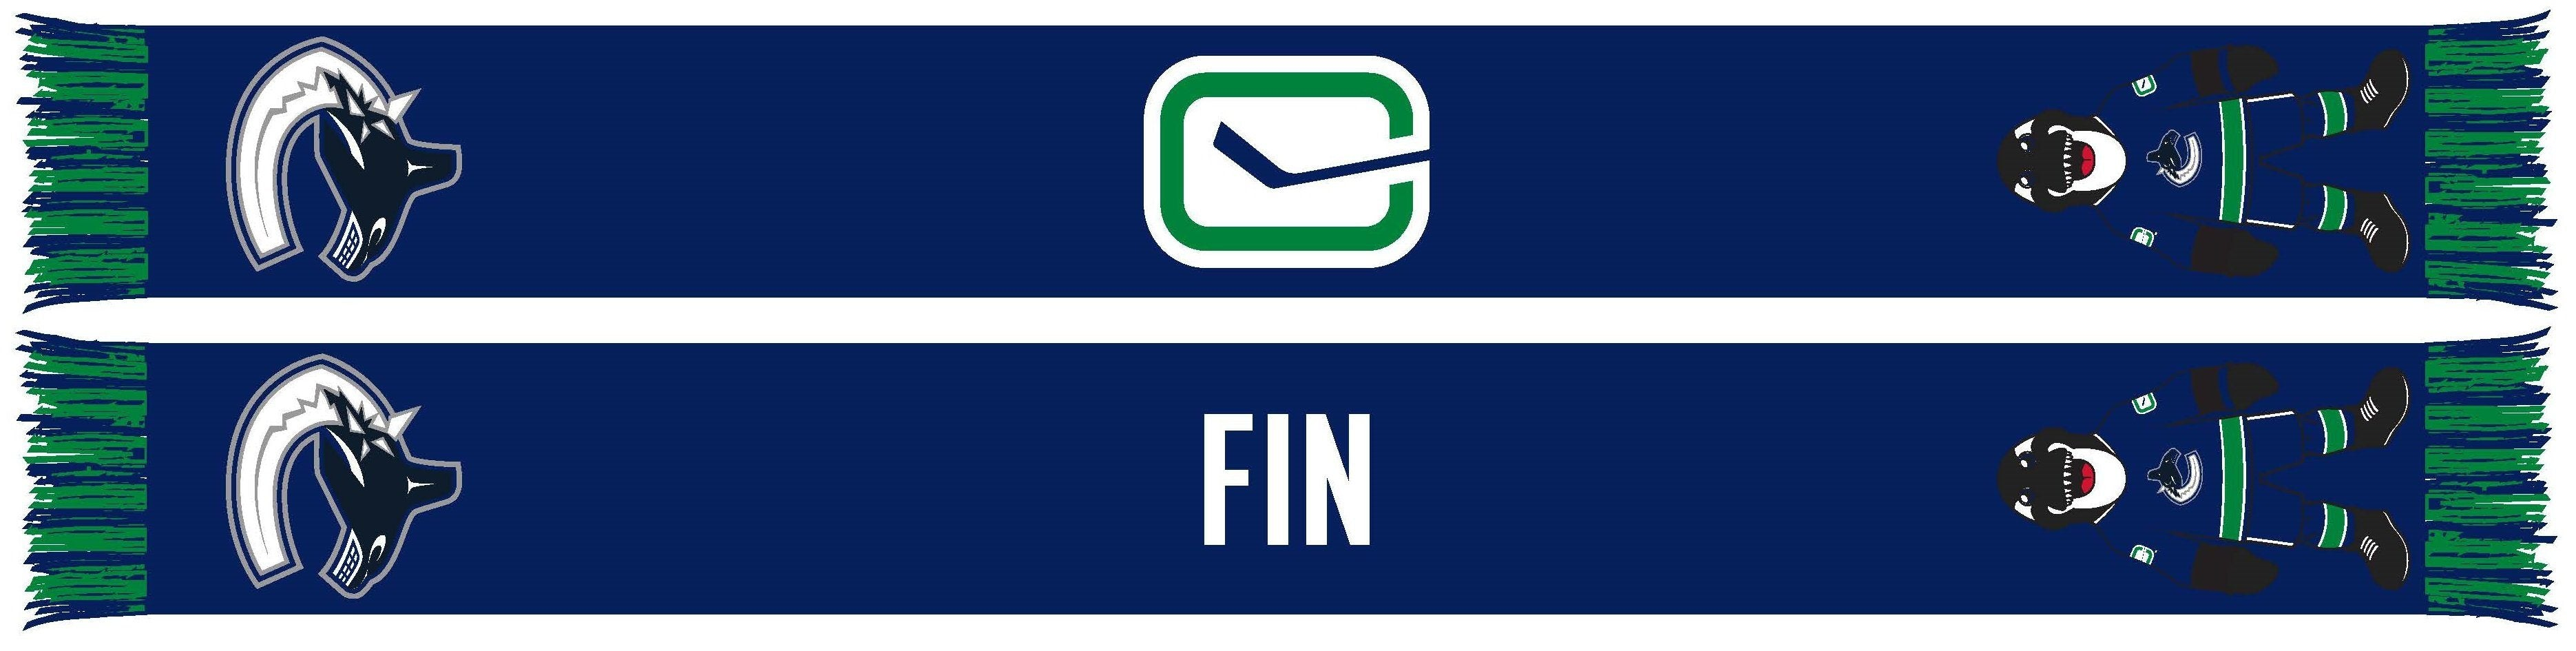 VANCOUVER CANUCKS - Mascot - Fin (Summer Scarf)